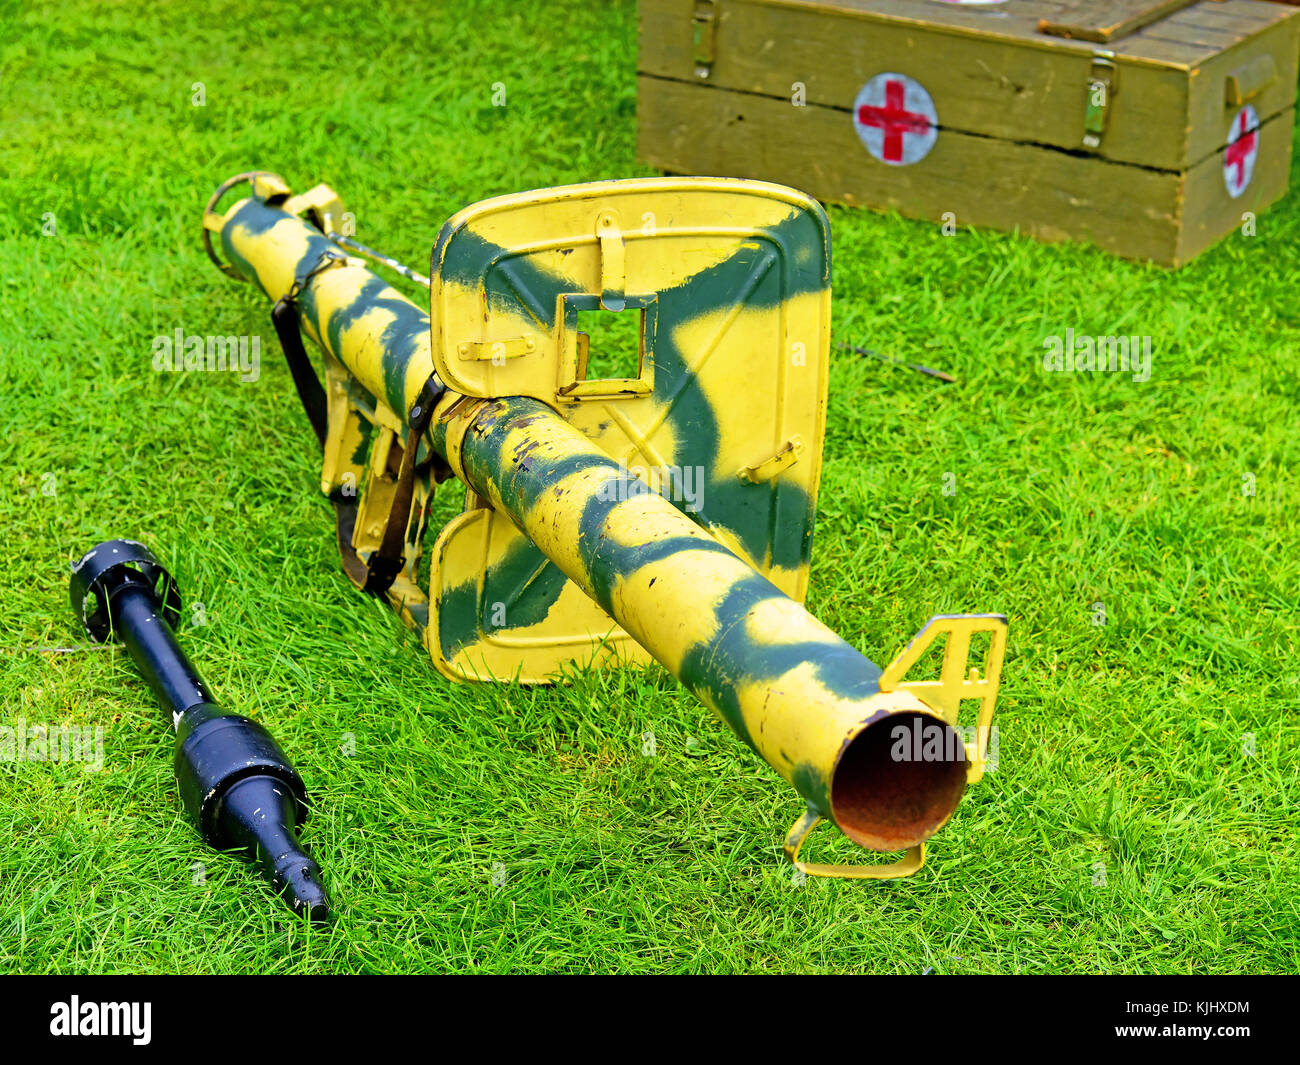 German WWII anti tank infantry weapon Panzerschreck and missile - Stock Image